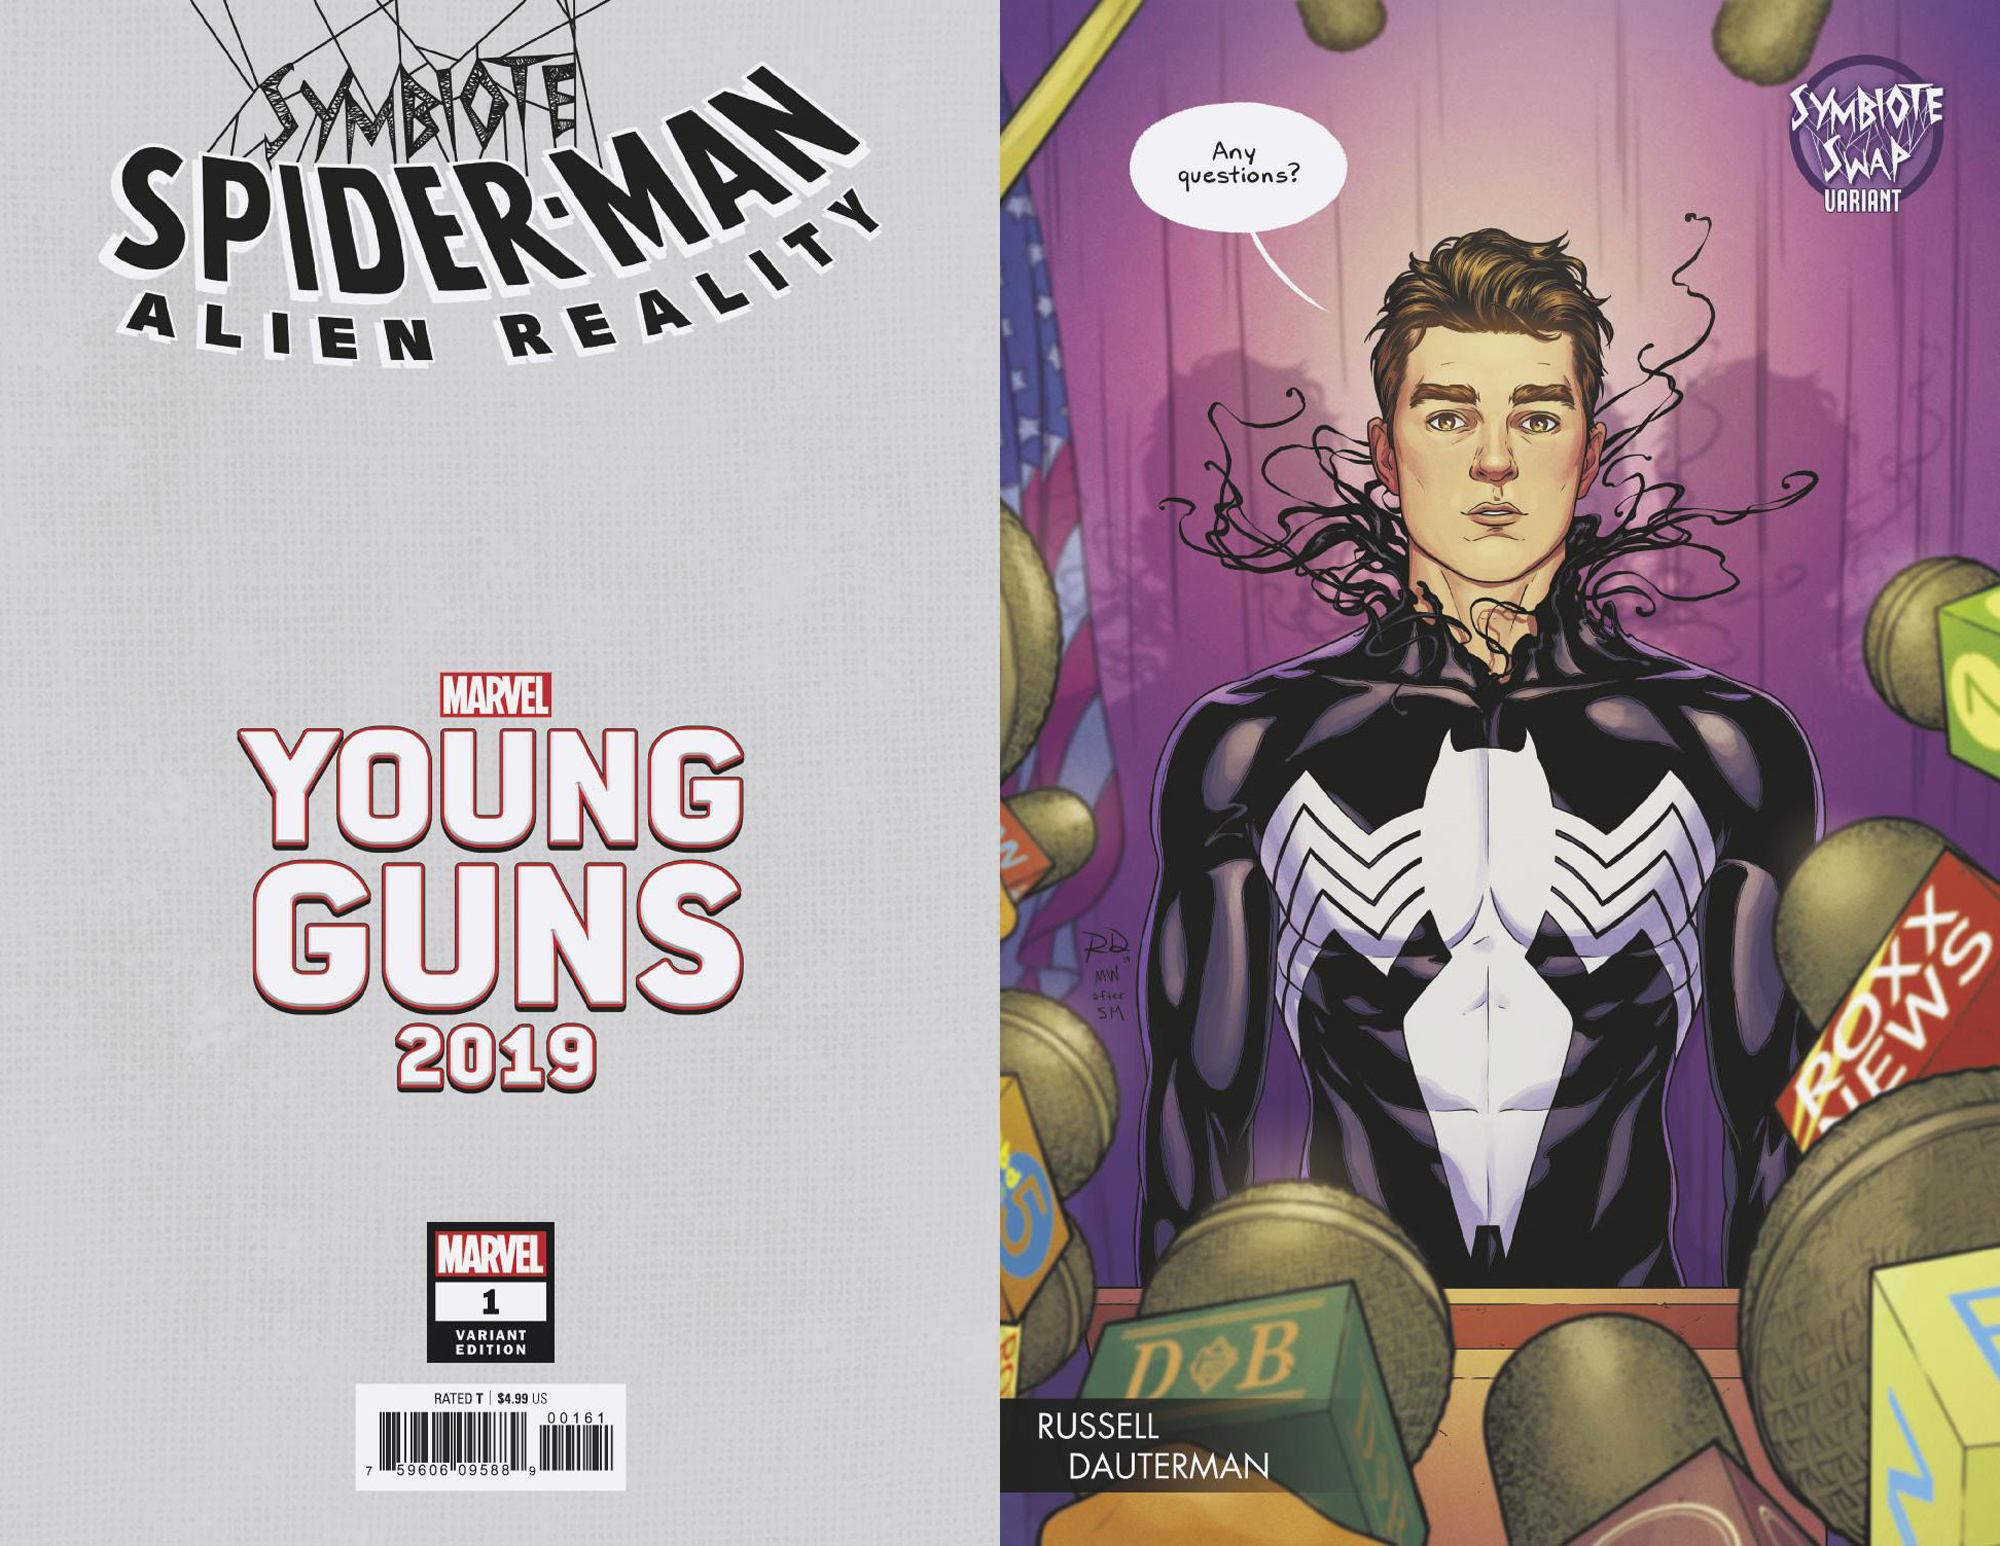 SYMBIOTE SPIDER-MAN ALIEN REALITY #1 (OF 5) DAUTERMAN YOUNG